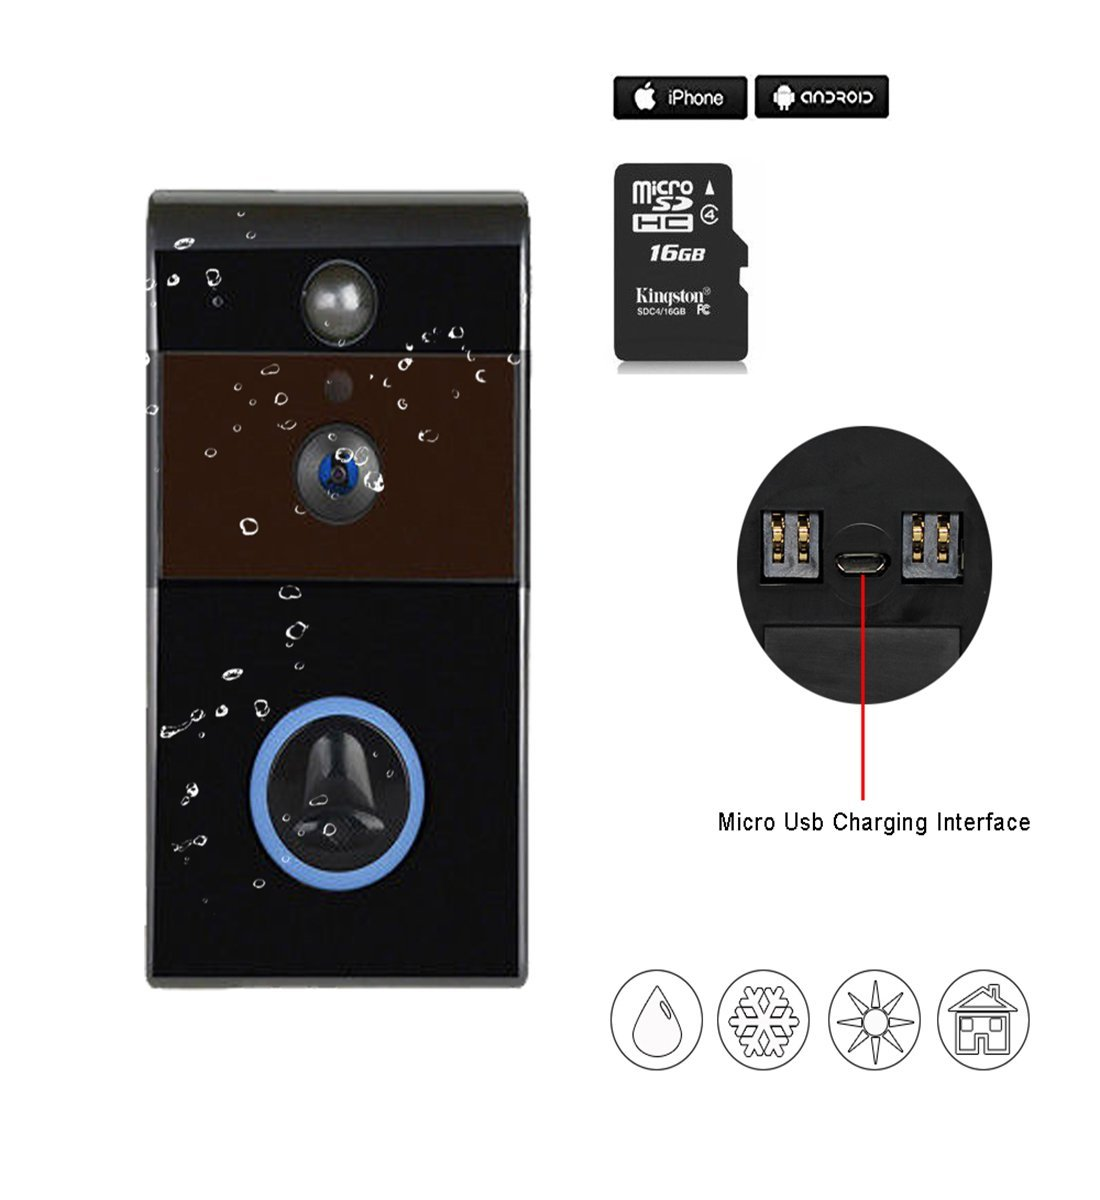 Wi-Fi Enabled Video Doorbell Wireless Door Bell Waterproof Rechargeable 16GB MicroSD Card Smart Video Doorbell Camera PIR Motion Sensor,Night Vision,Two Way Talking for iPhone and Android